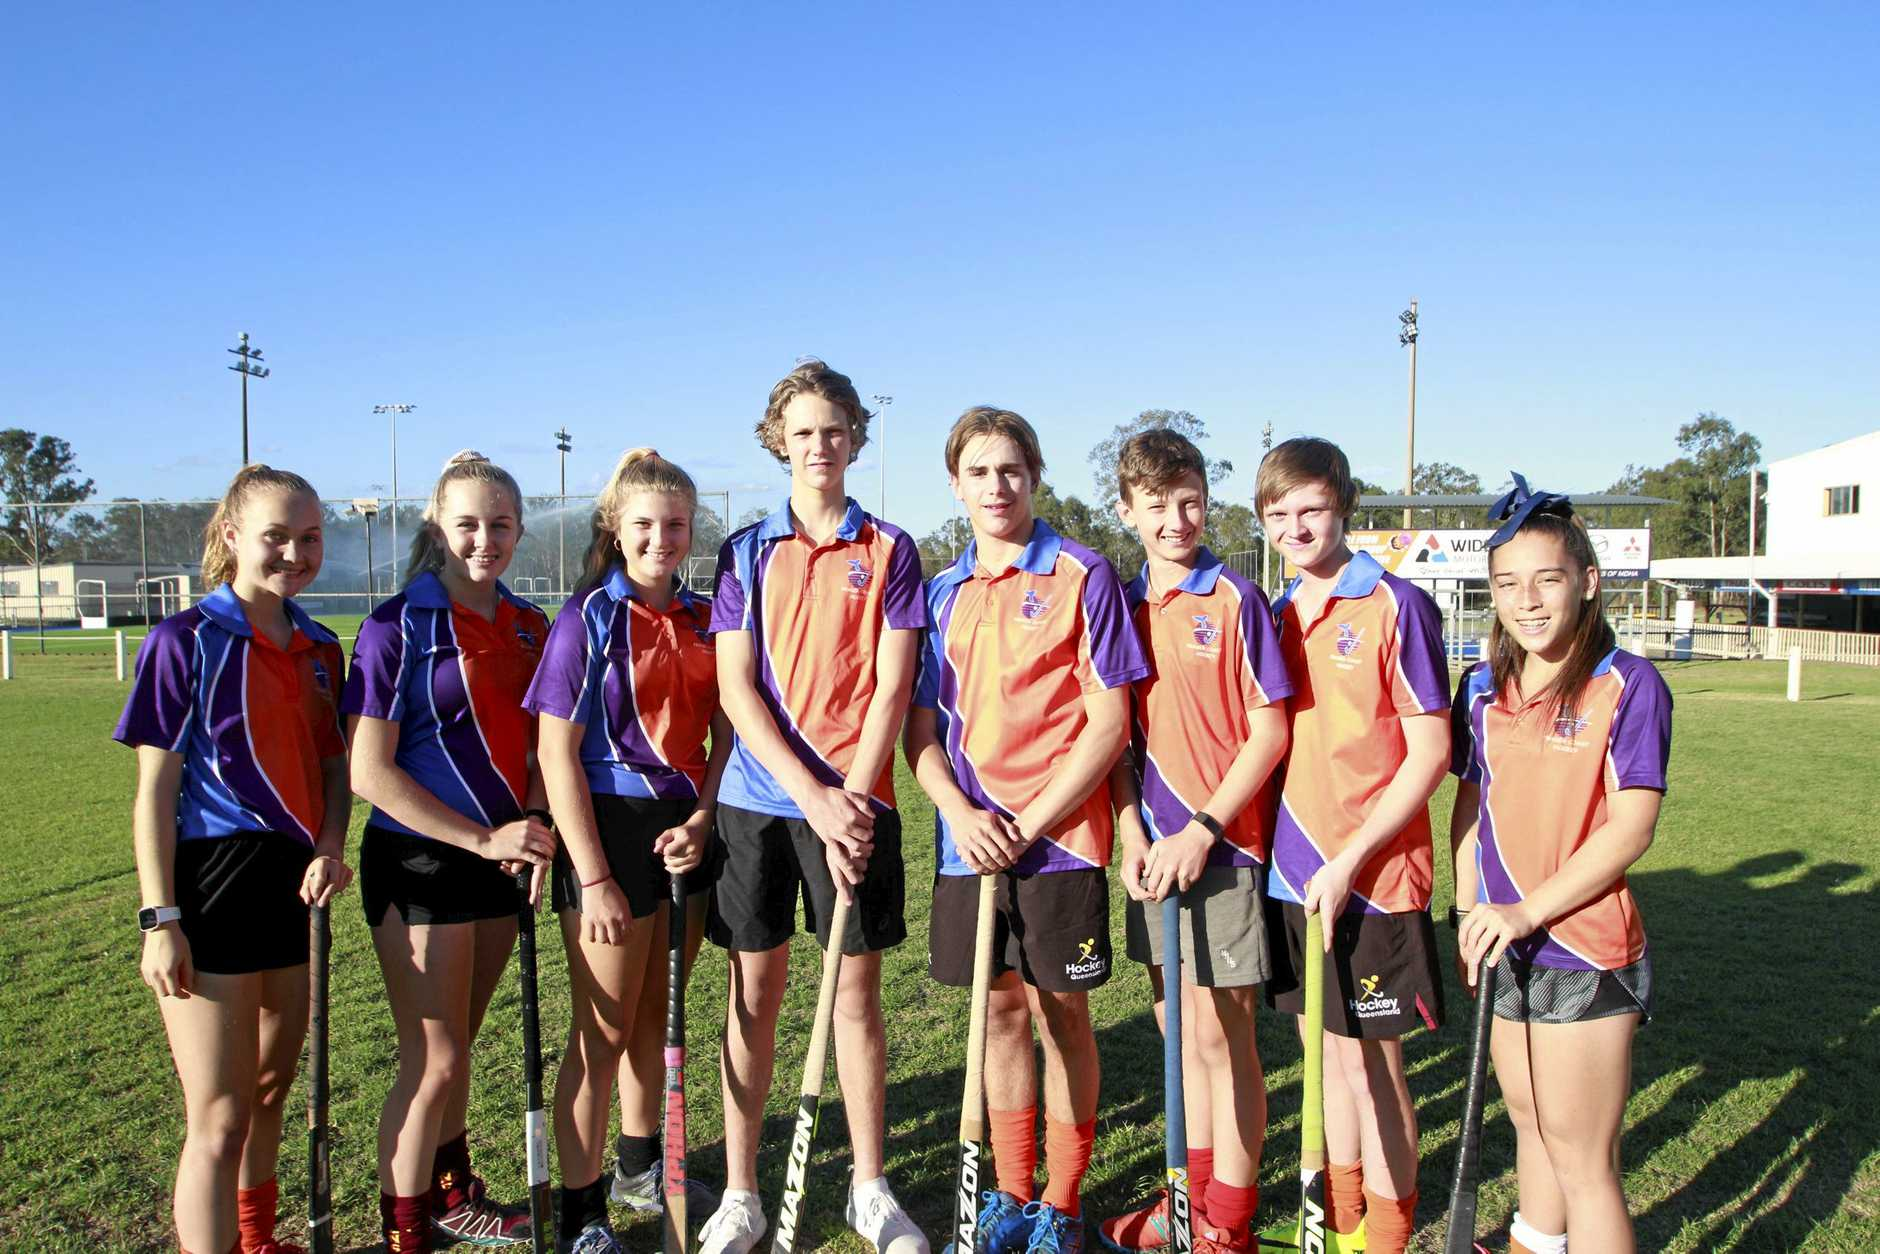 NEW CHAMPIONS: Fraser Coast under-15 players have been recently selected for Queensland squad representative teams - Maddy Kenny, Leila Steffen, Taryn Knight, Ben Redmond, Ryan Wilcox, Darcy Rumpton, Daniel Mooney and Annelyse Tevant had successful state championships.